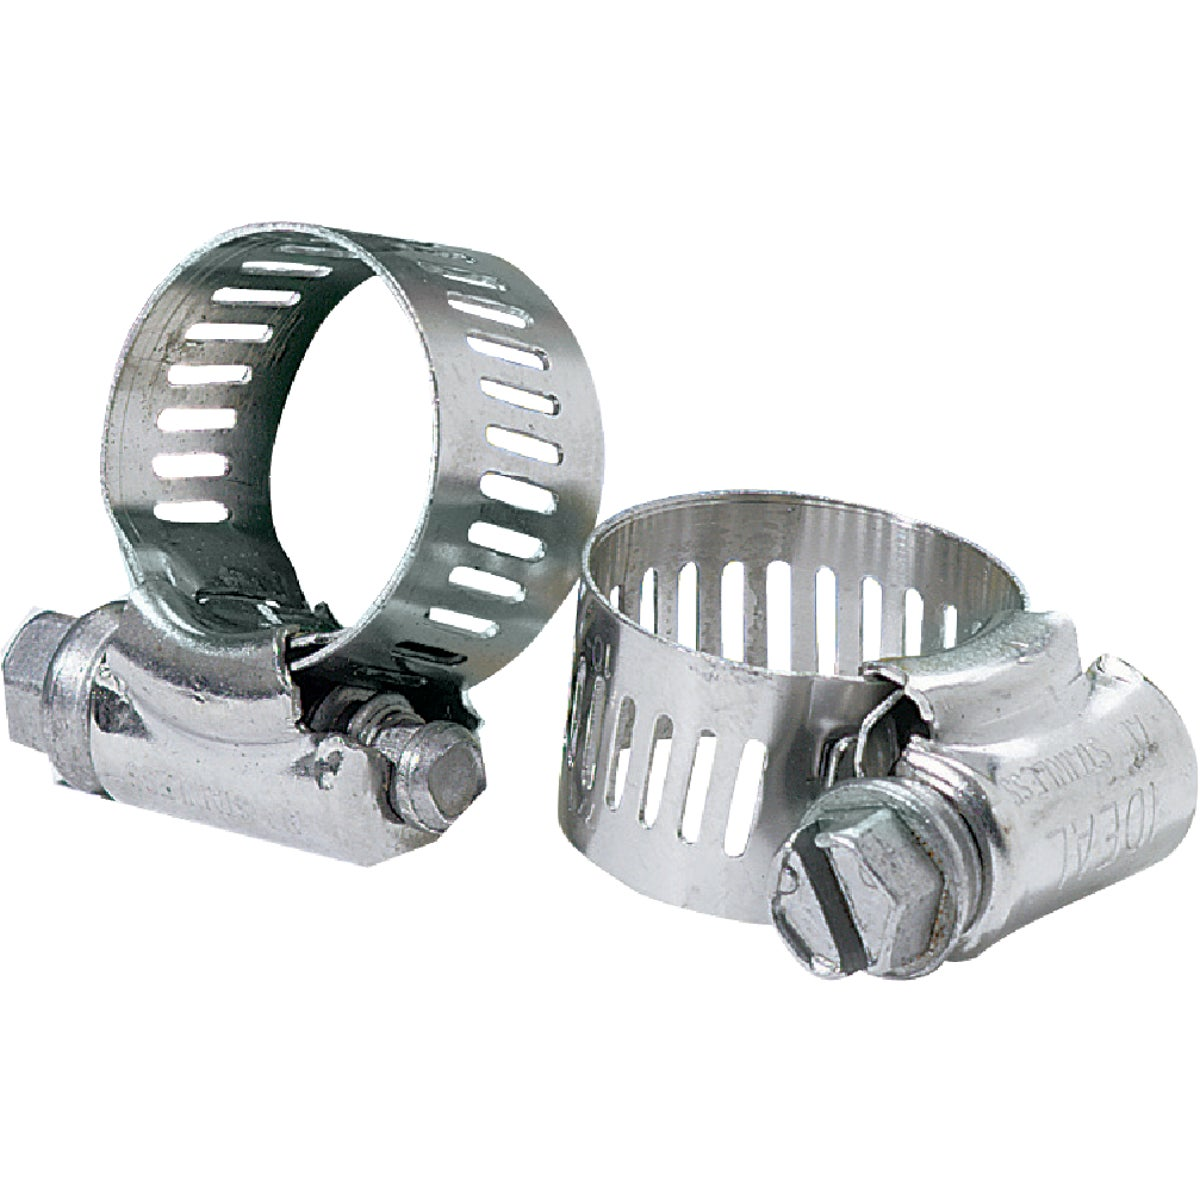 "2-1/4"" TO 3-1/4"" CLAMP - 6744153 by Ideal Corp"